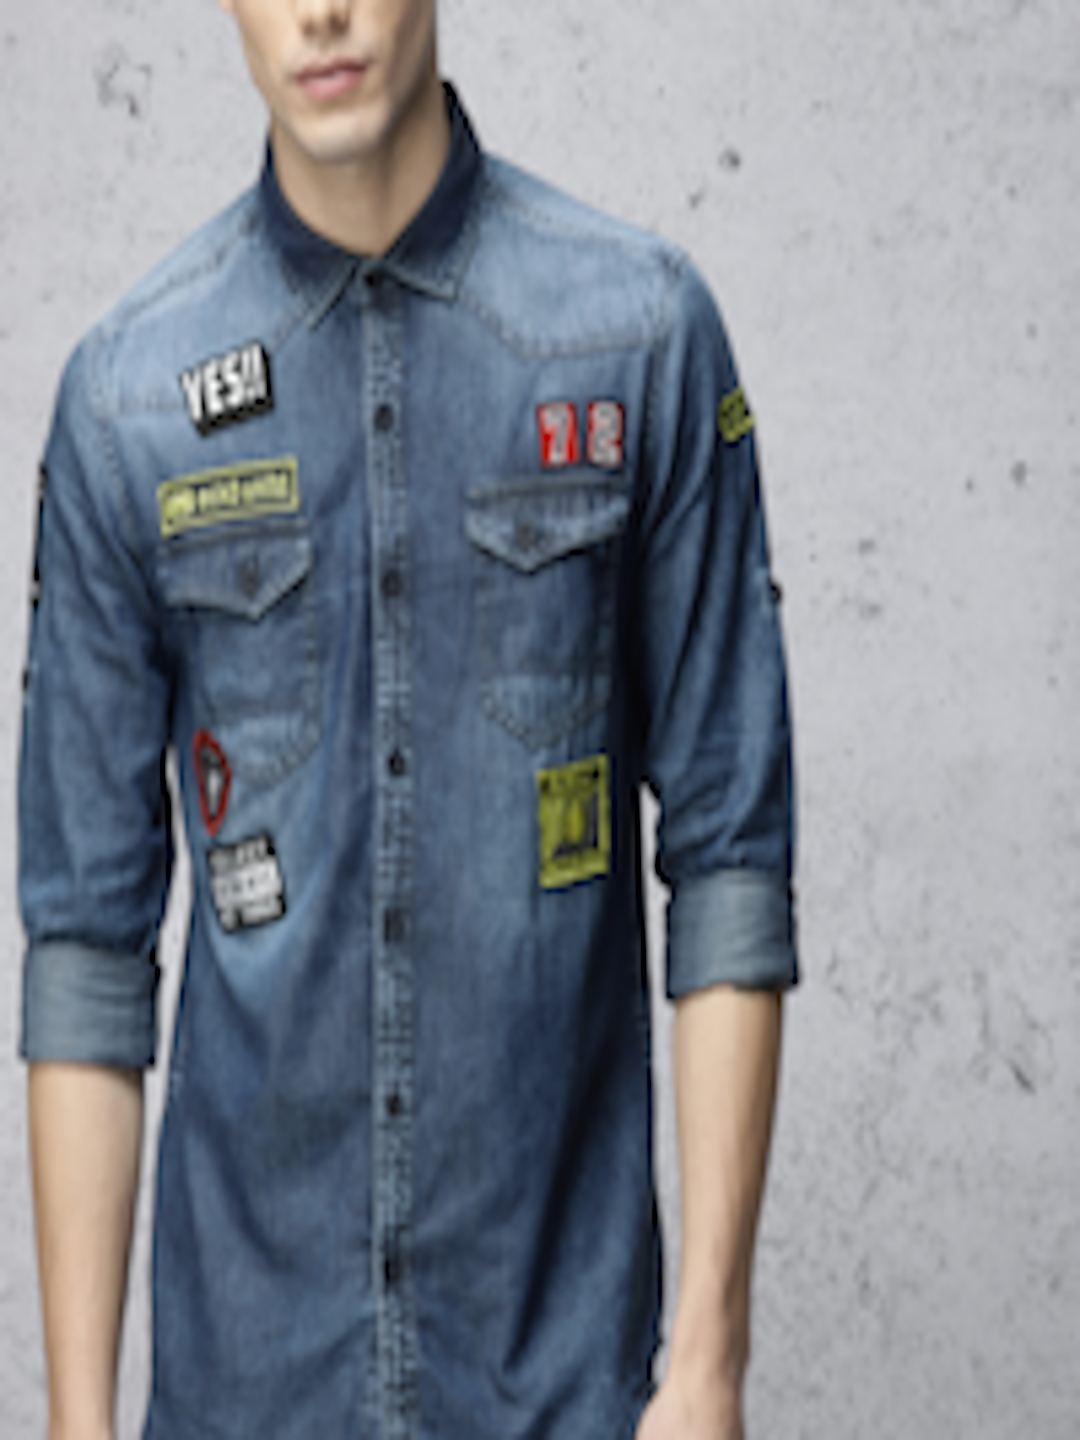 c2f5b0119c Buy Ecko Unltd Men Blue Slim Fit Washed Denim Shirt - Shirts for Men  2124540